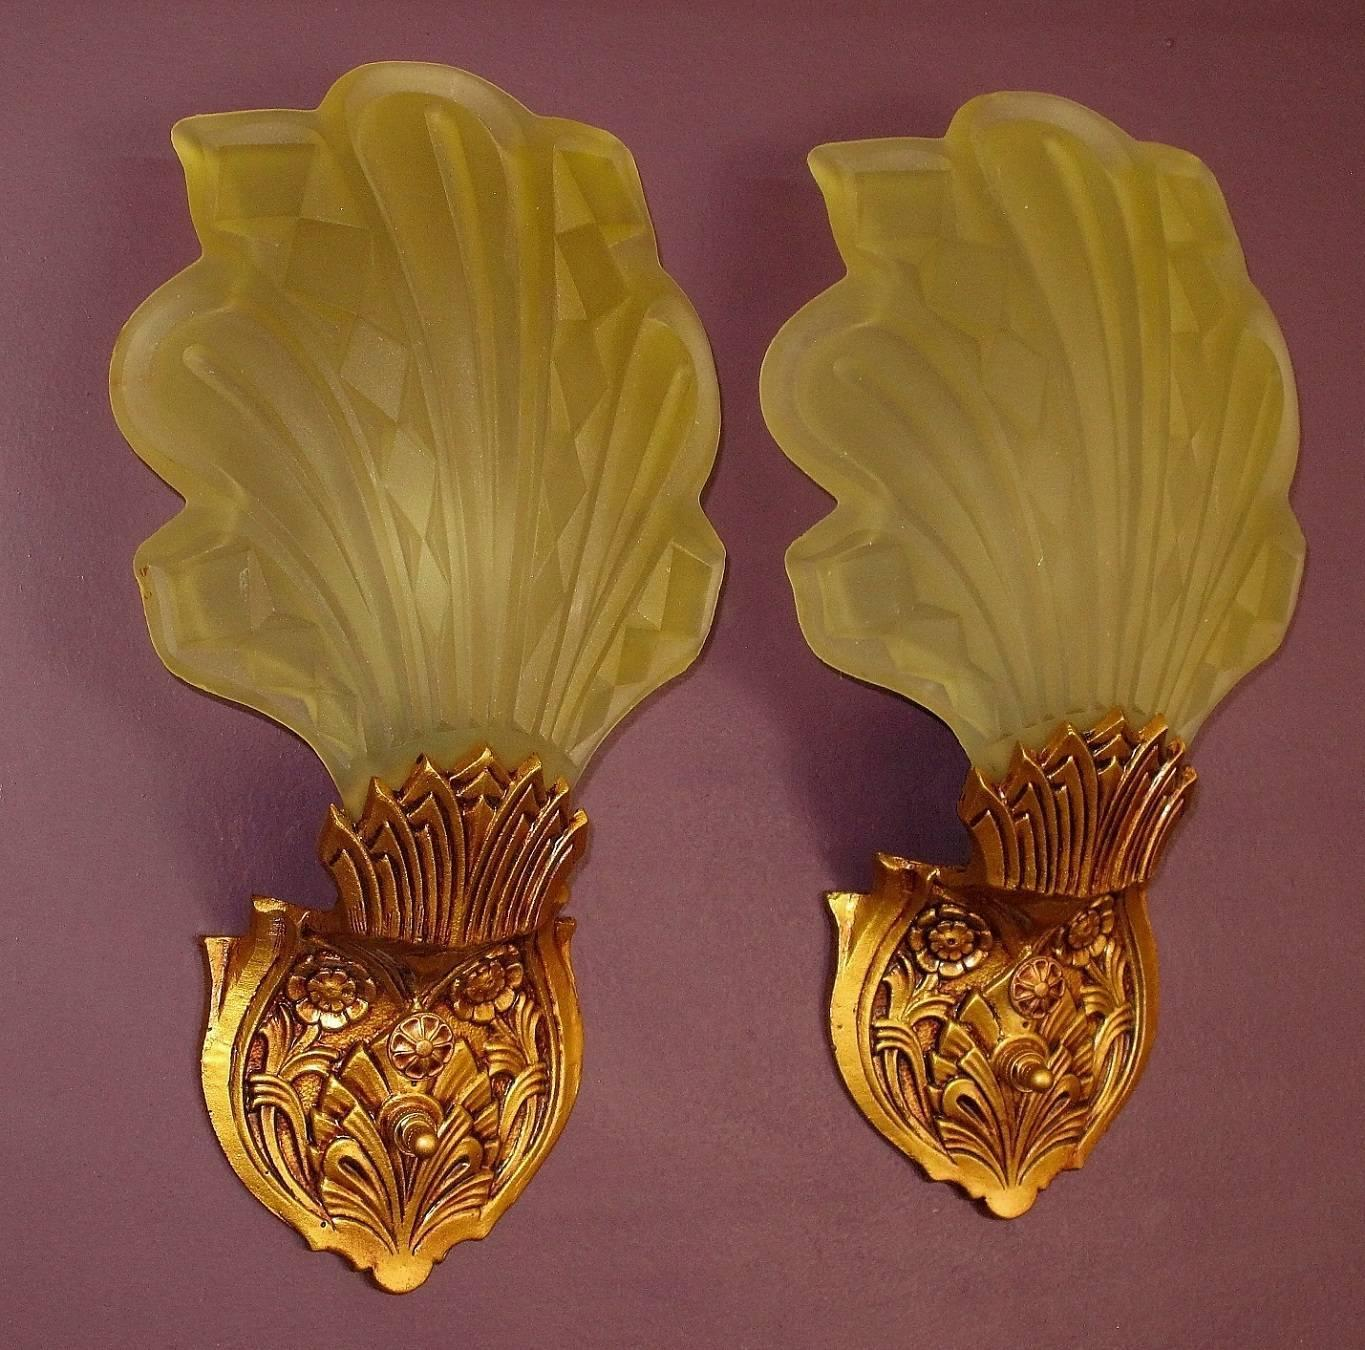 Late 1920s Early 1930s Art Deco Wall Sconces For Sale At